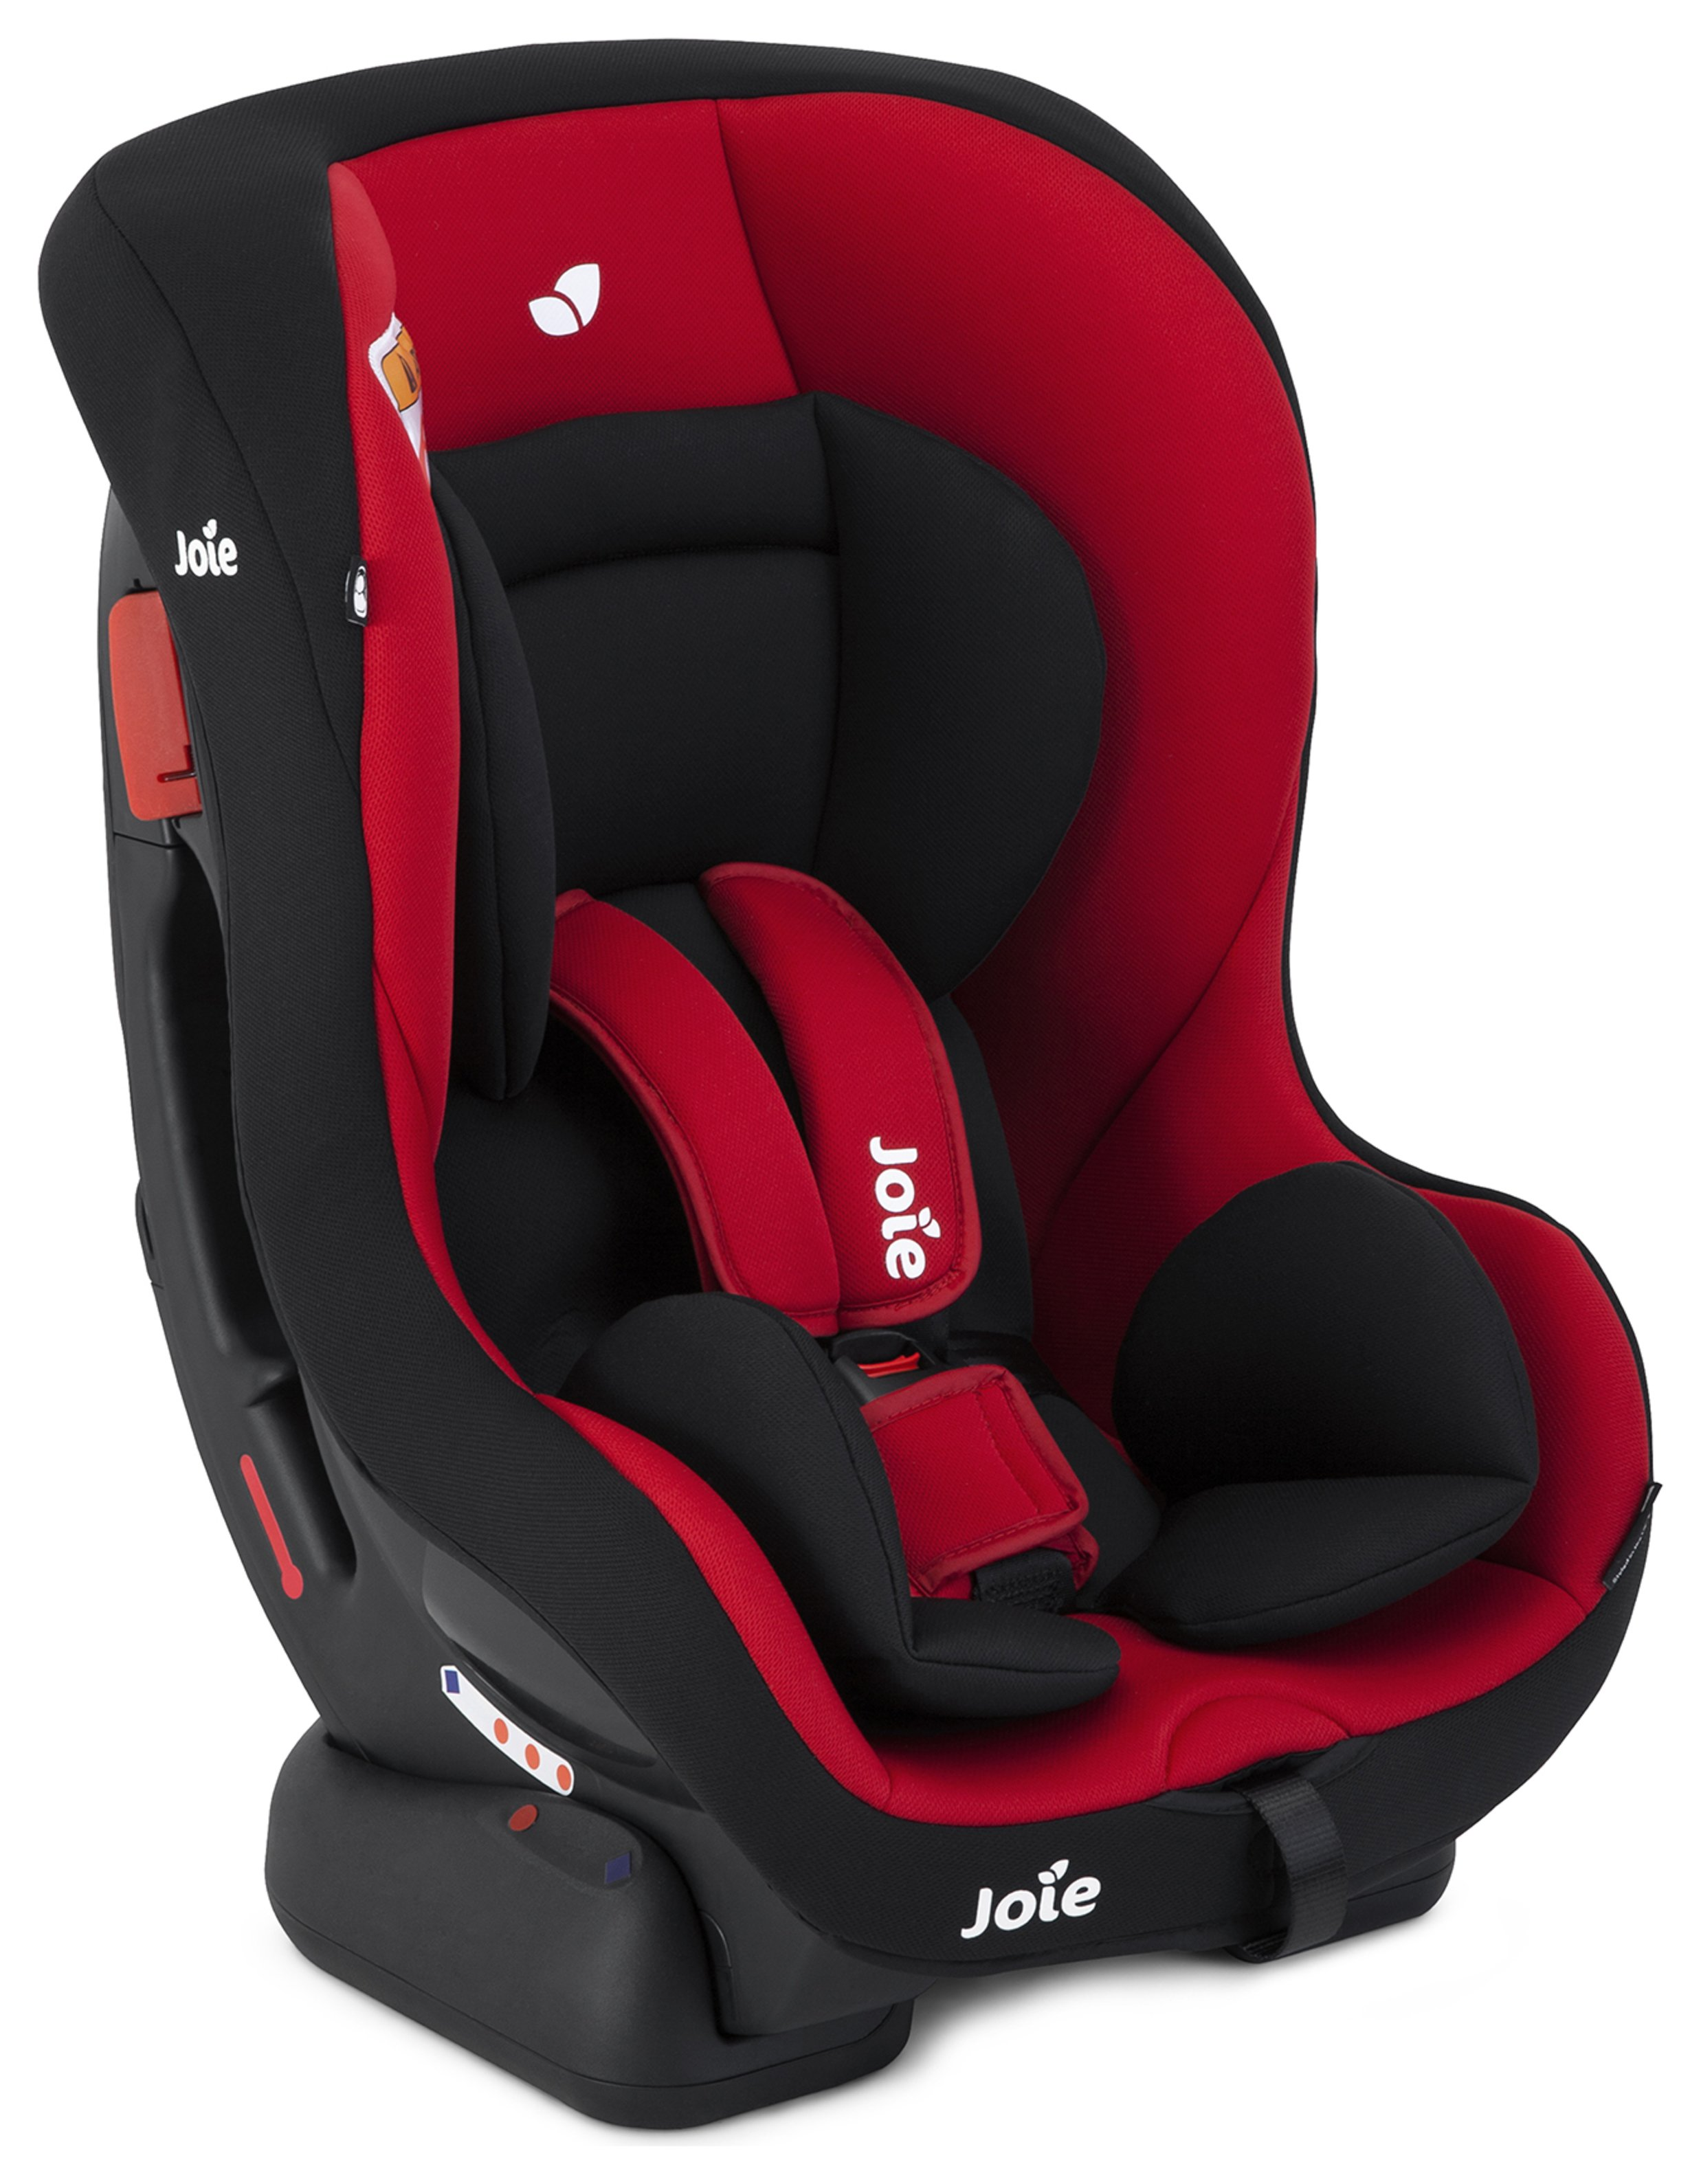 car seats page 3 argos price tracker. Black Bedroom Furniture Sets. Home Design Ideas